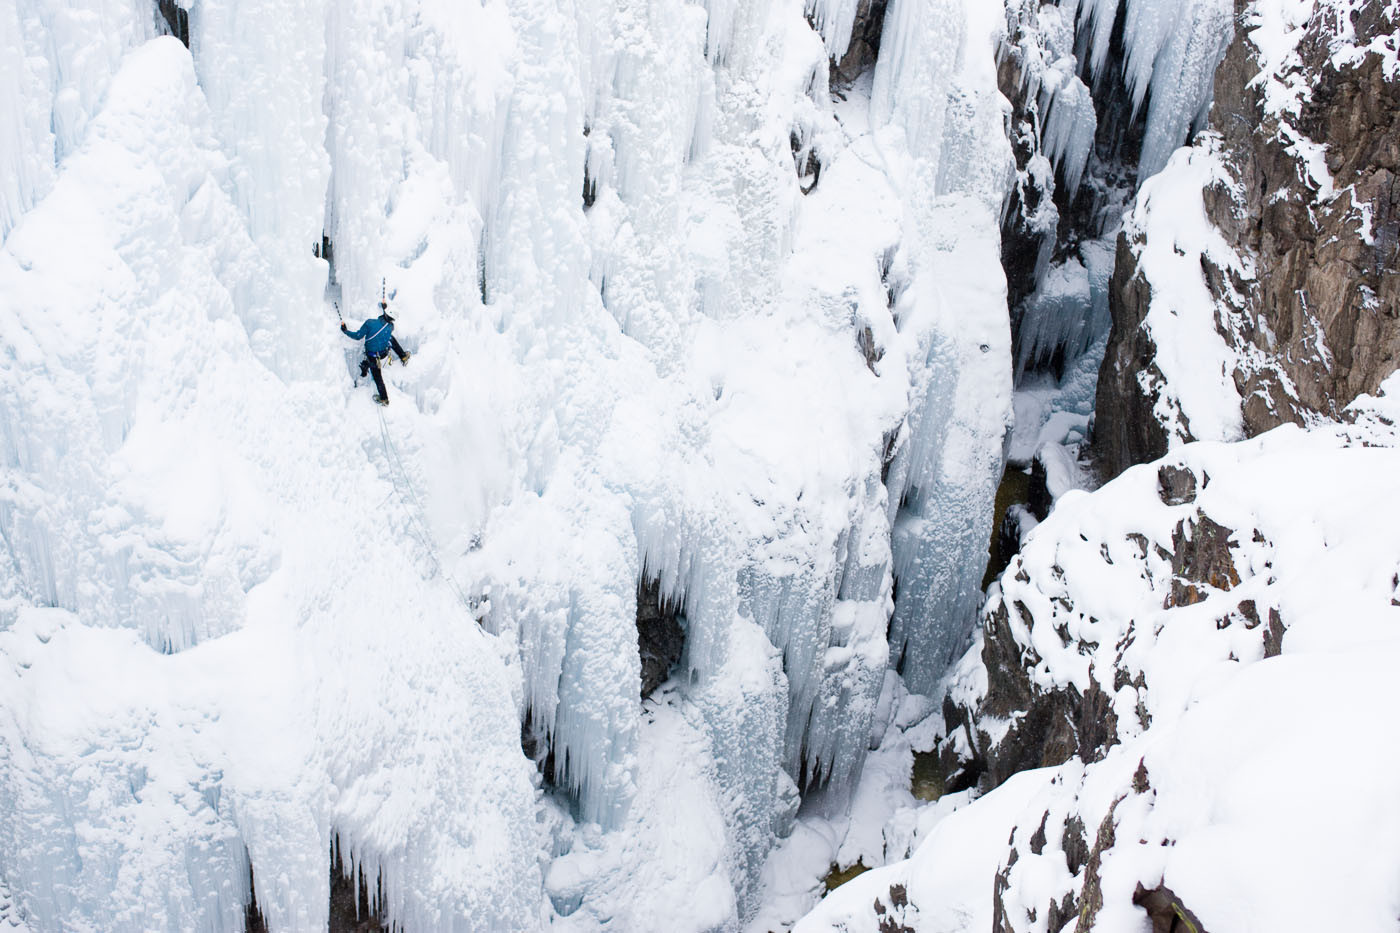 Male ice climber (Aaron Prochaska) climbing in Ouray, Colorado